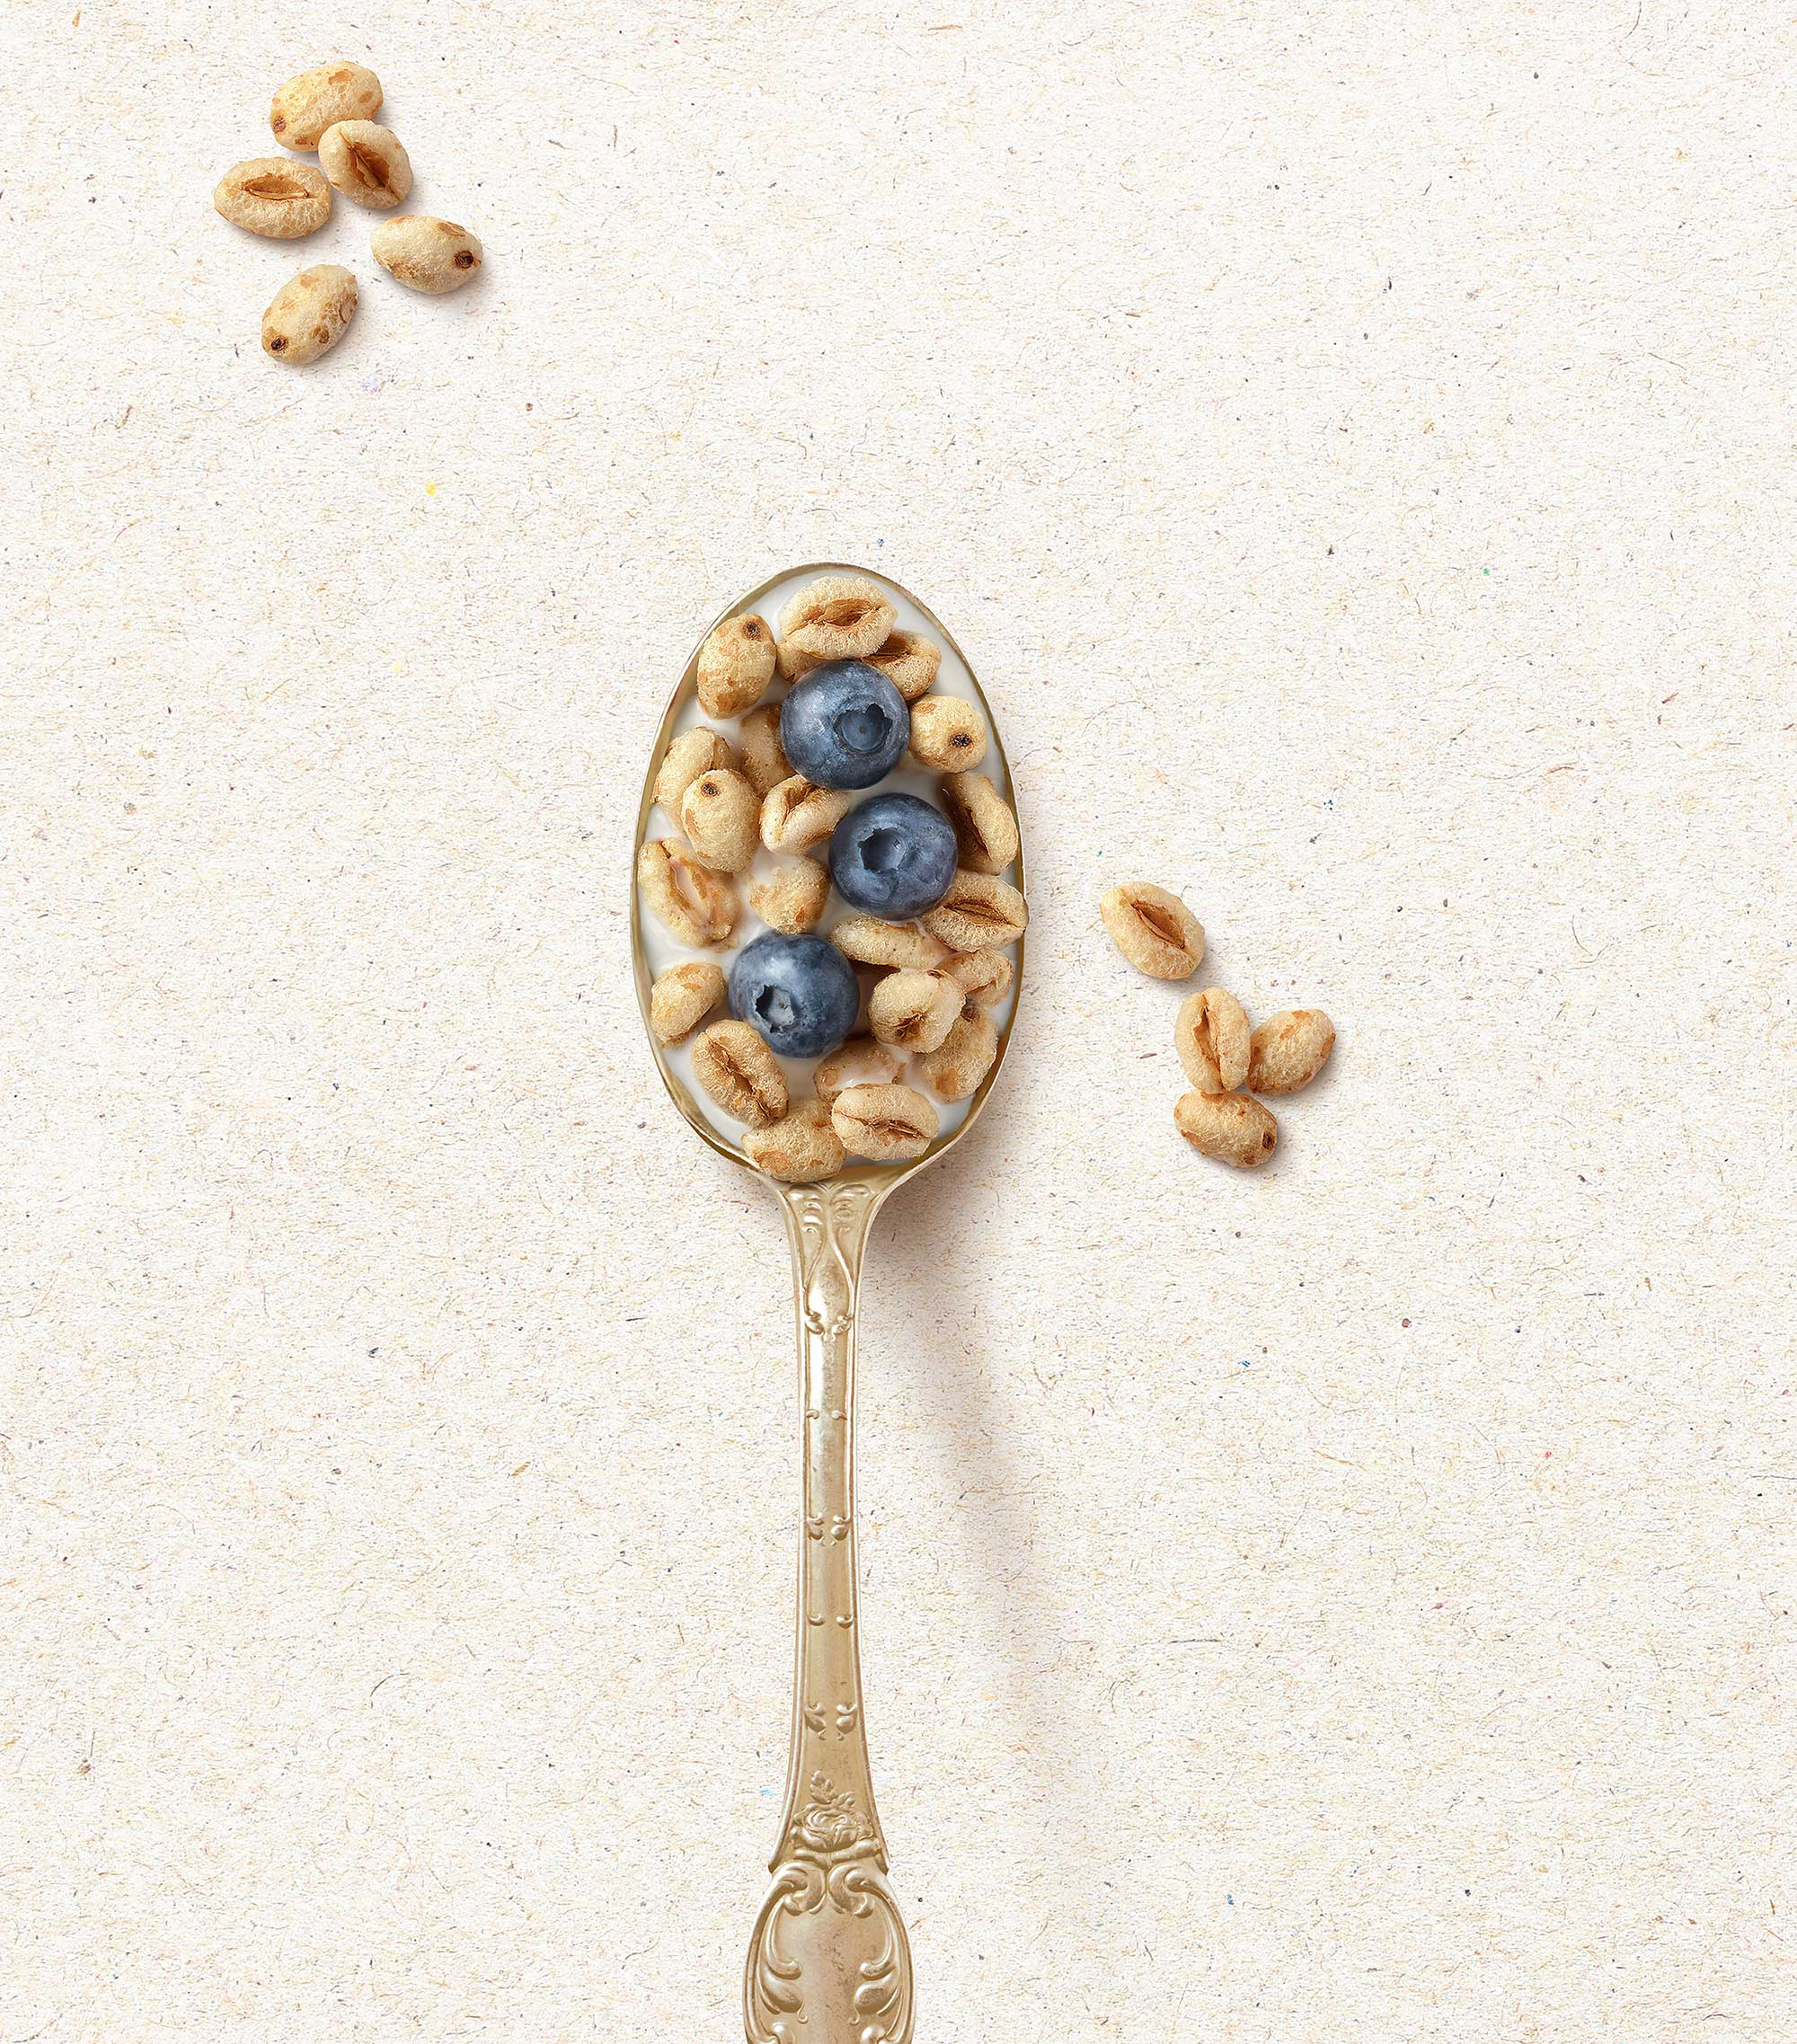 mike wepplo natural photography breakfast quaker oats puff cereal on spoon